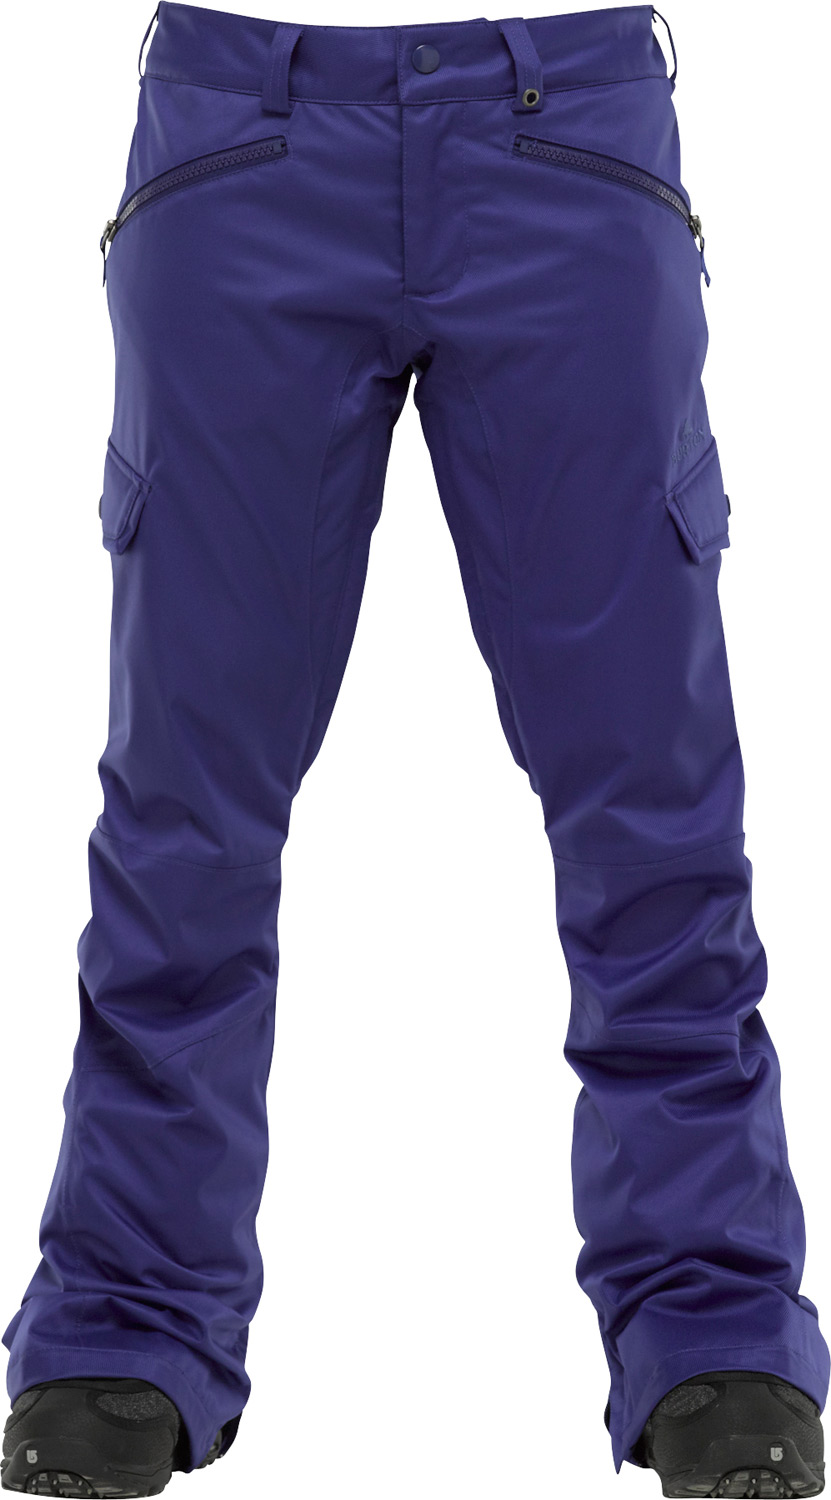 Snowboard Dangerous curves ahead!Key Features of the Burton Indulgence Snowboard Pants: 10,000mm Waterproof 5,000g Breathability DRYRIDE Durashell 2-Layer Coated Stretch Twill Woven Fabric [10,000MM, 5,000G] Slim Fit Stretch Taffeta Lining Mesh-Lined Inner Thigh Vents Thigh Vents Fully Taped Seams NEW Expandable Boot Gaiter Integrated Waist Adjustment Reinforced Hems Universal Pant Features:DRYRIDE Fabrication with DWR Coating Microfleece-Lined Handwarmer Pockets Articulated Knees Engineered Lining Bomber YKK Zippers Jacket-to-Pant Interface Taped Seams Boot Gaiter with Gripper Elastic Cuffs Pass Pocket/Ticket O-Ring Butt Pockets Belt Loops Microfleece-Lined Fly and Waistband Ghetto Slits - $97.95